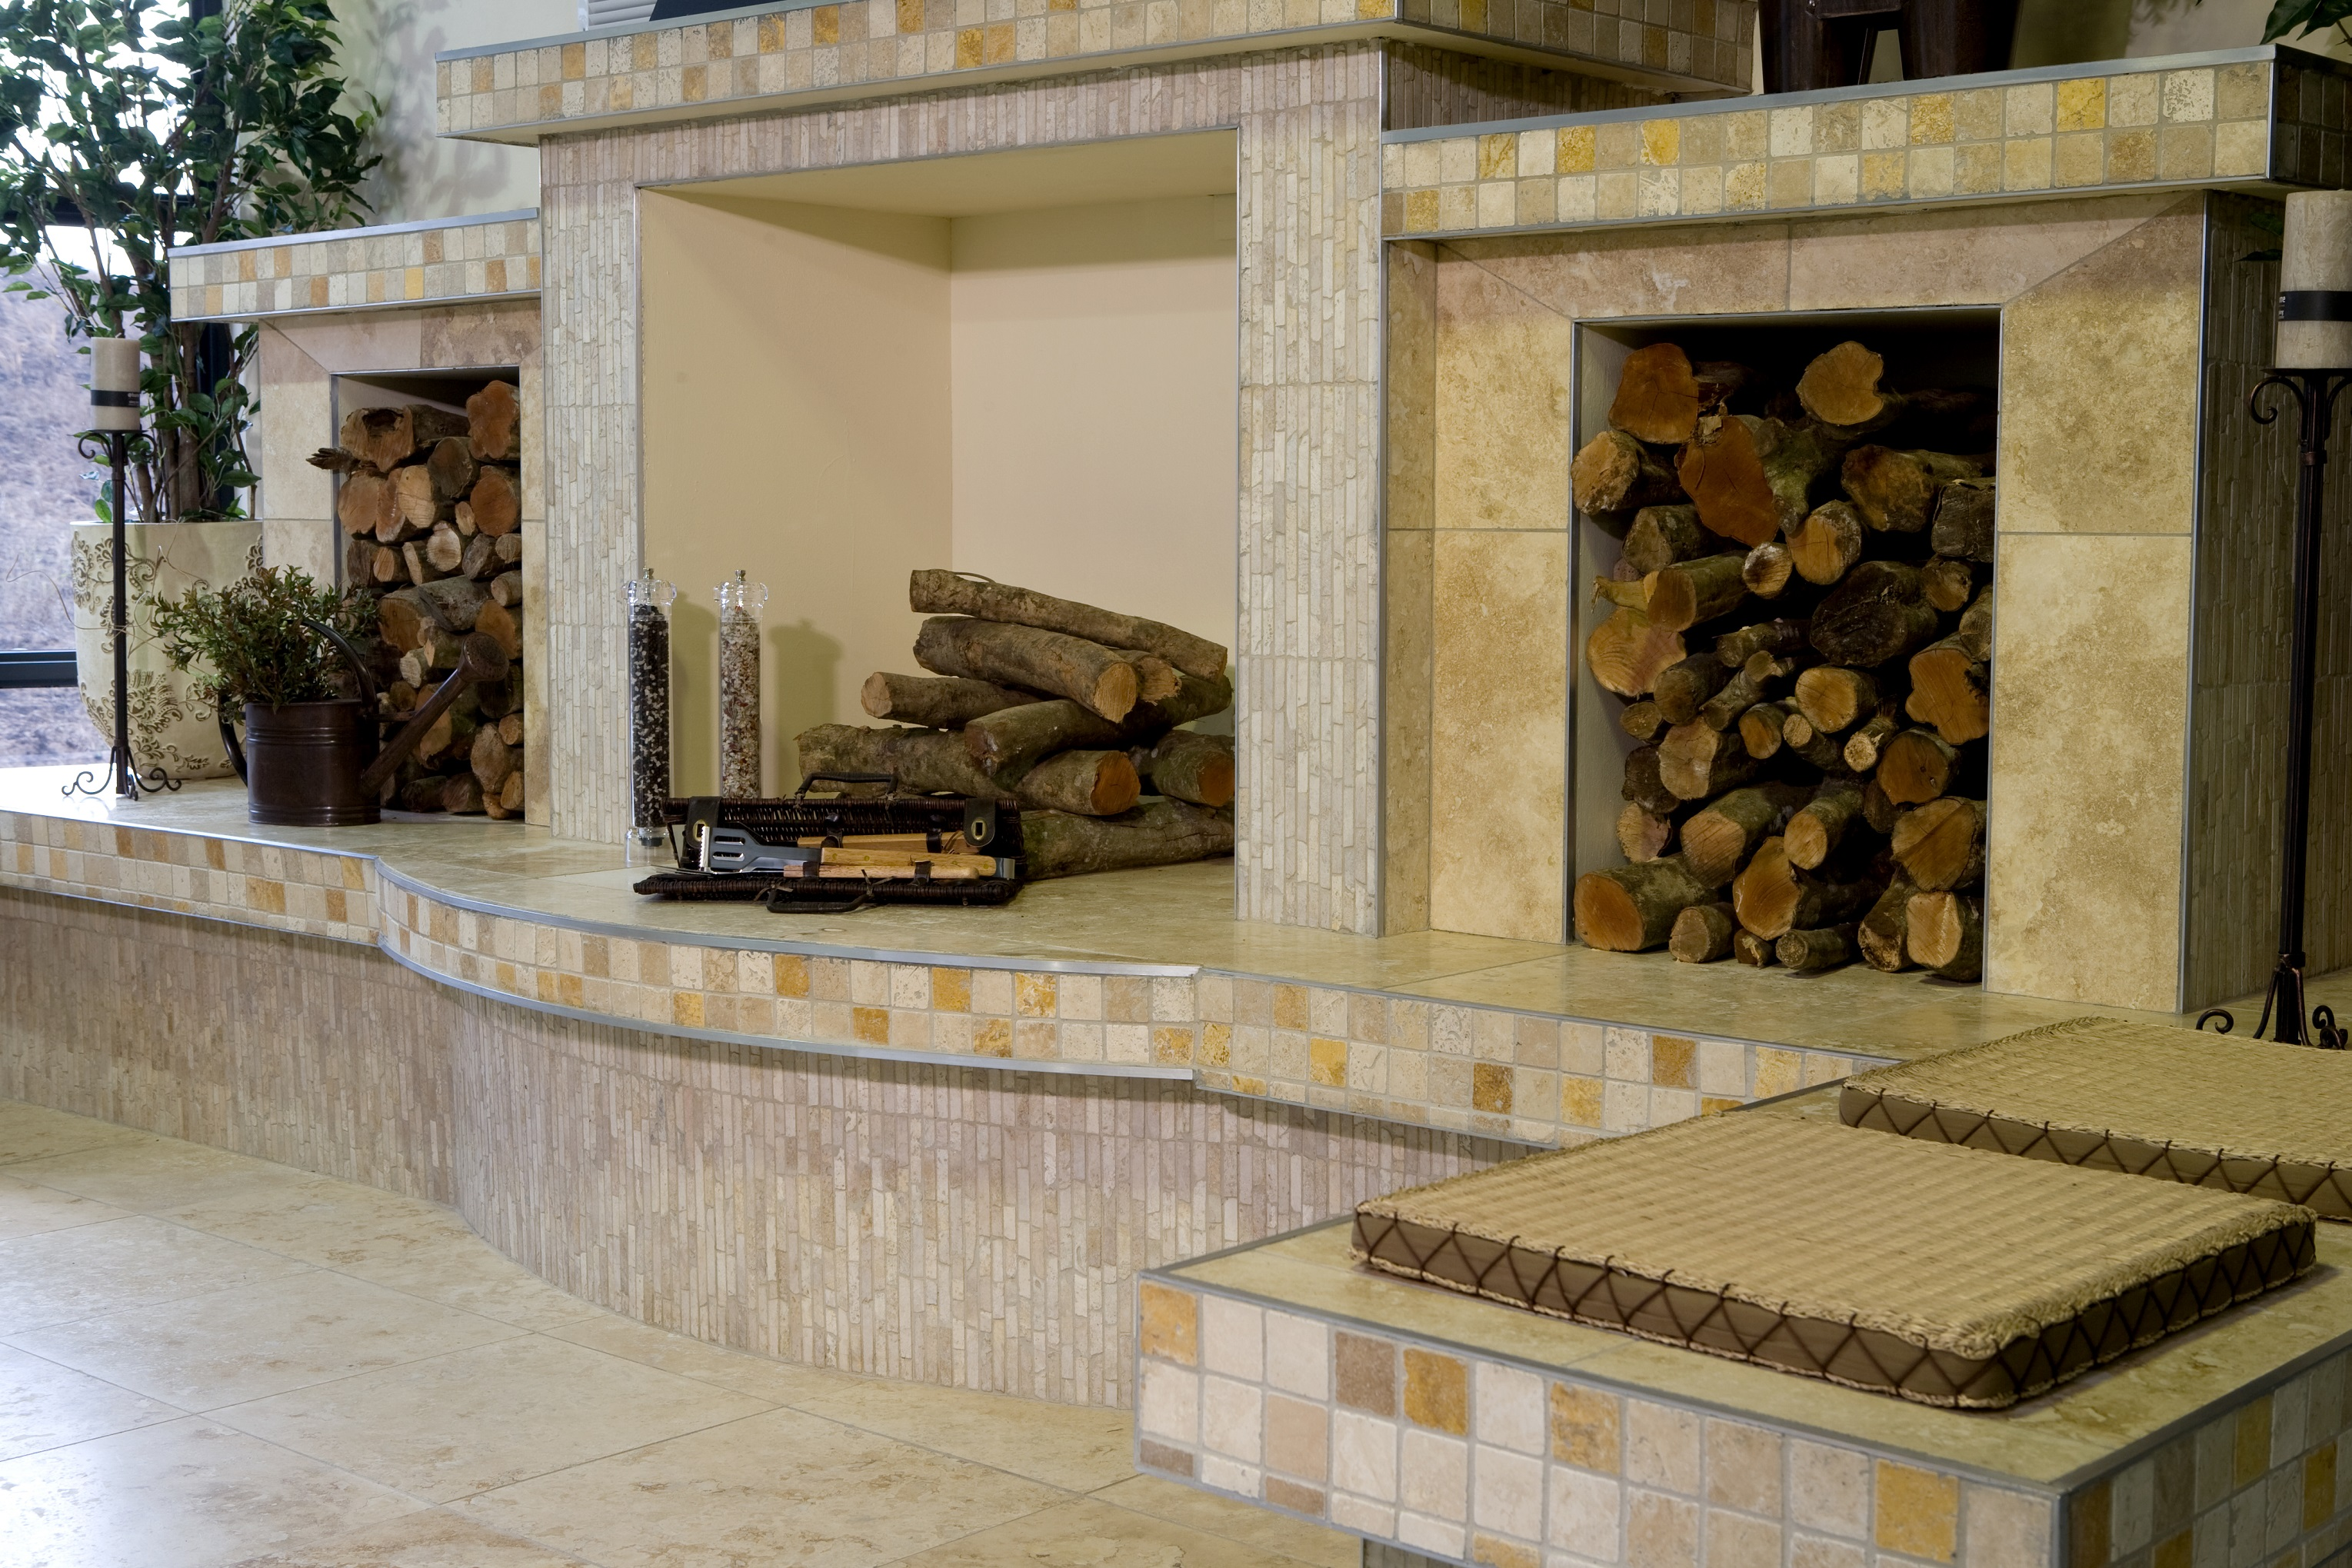 Home Decor Inside Outside: CHOOSING THE RIGHT TILING PRODUCTS FOR YOUR BRAAI AREA